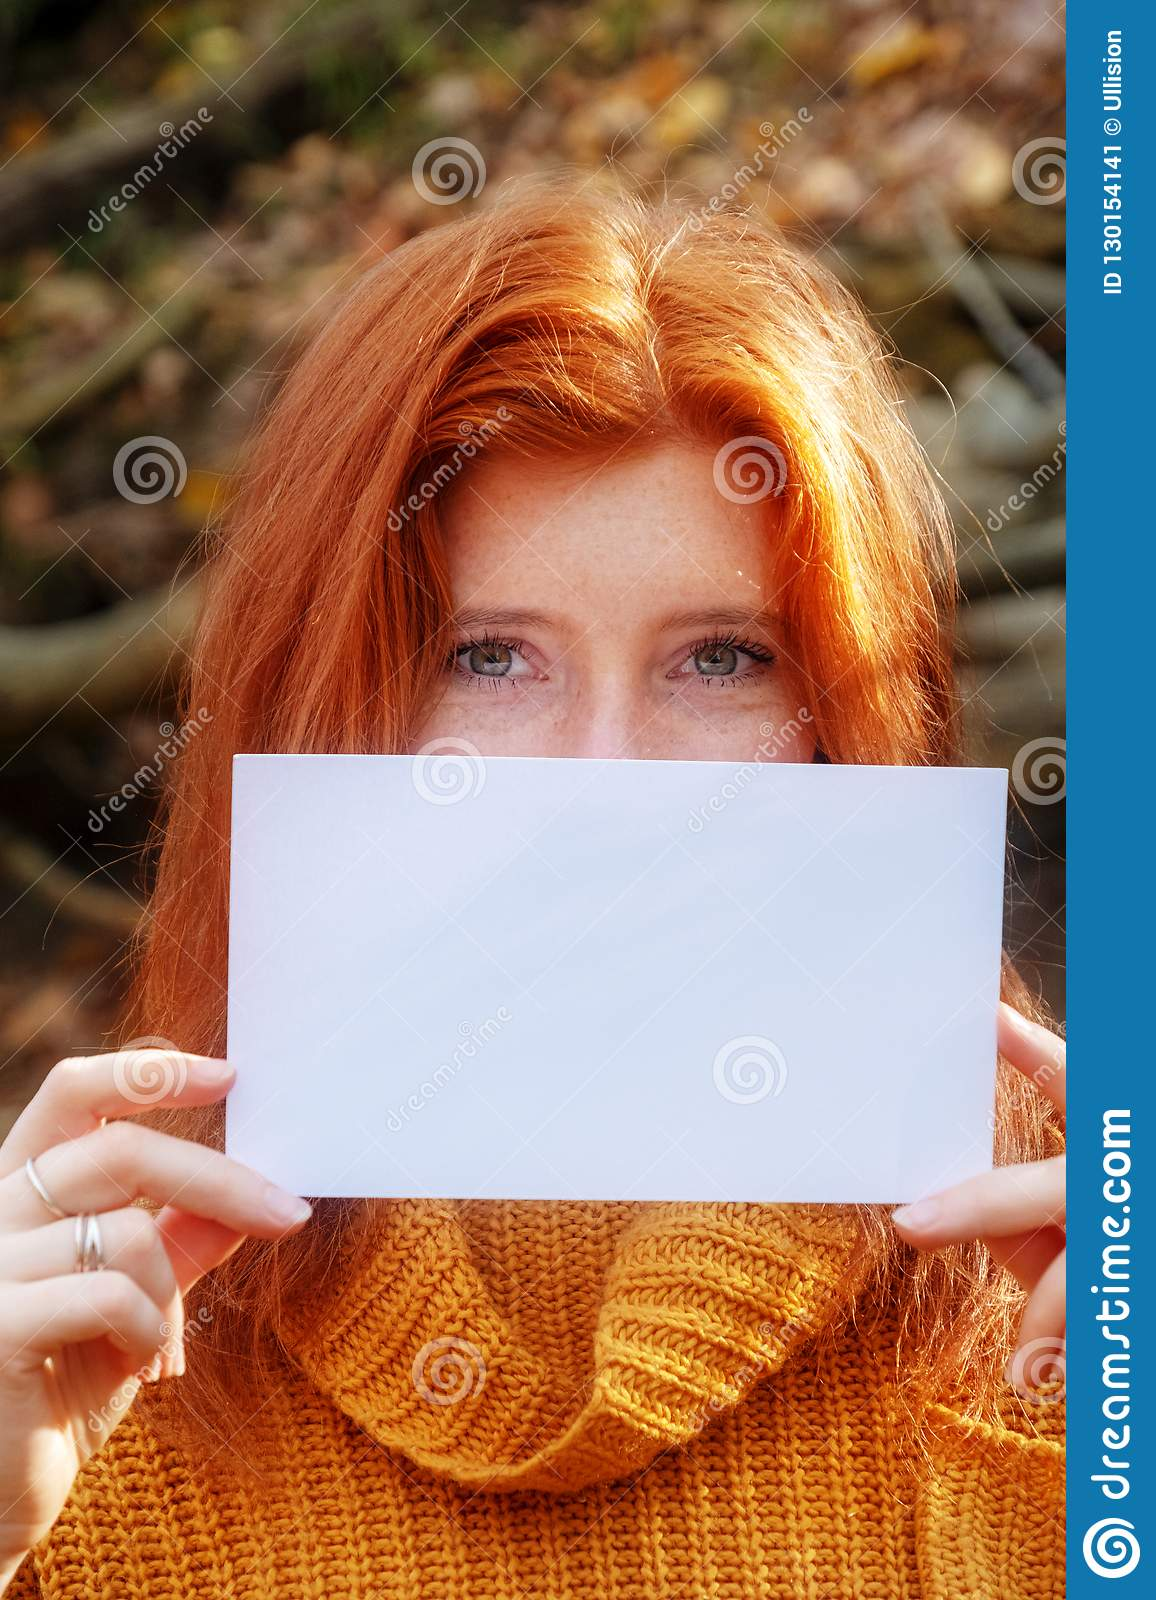 Portrait of beautiful young woman with red hair, ginger, in orange sweater smiling holding a blank blank paper in both hands